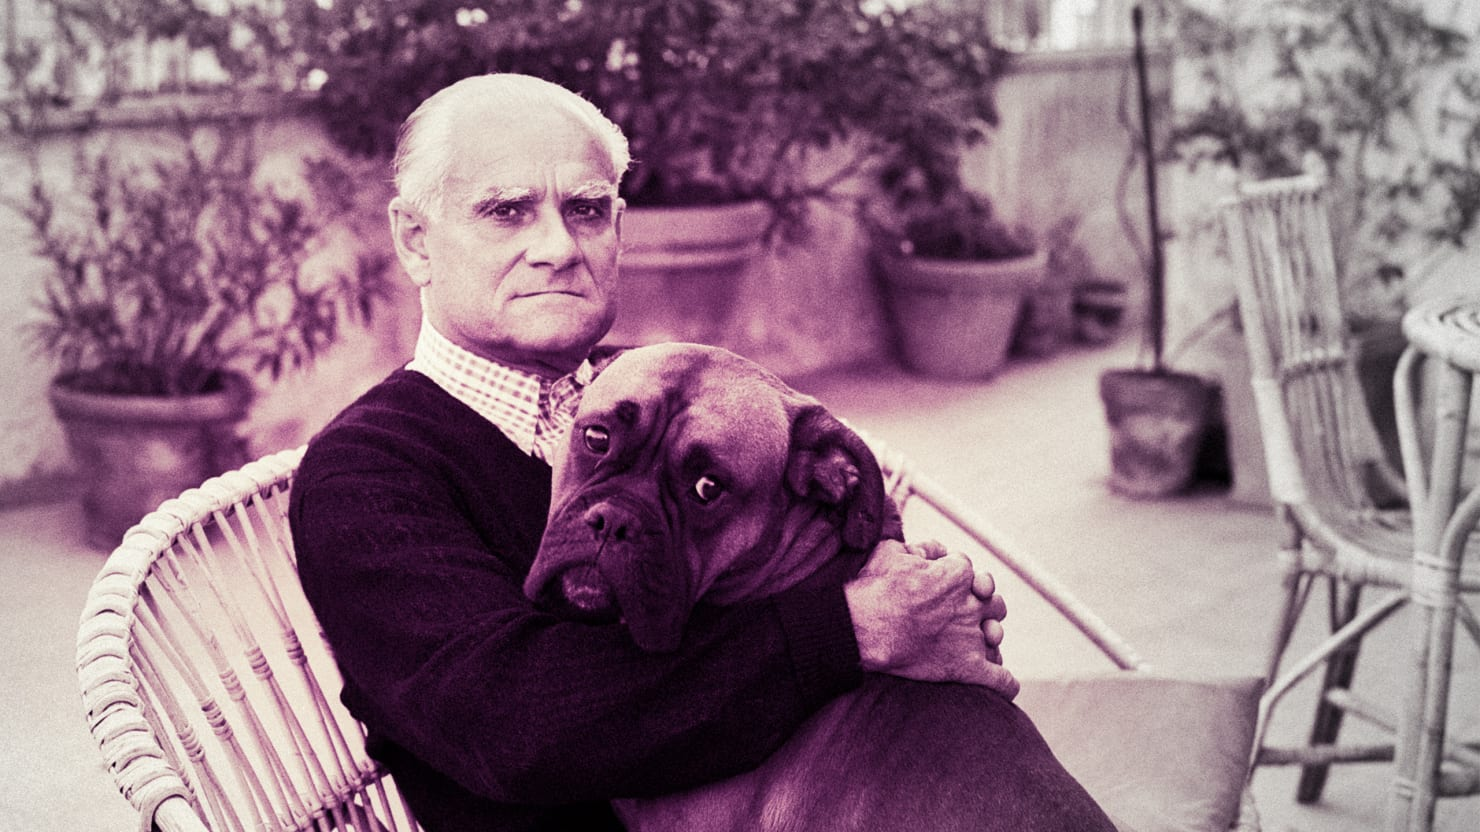 Better Way Auto >> Alberto Moravia, the Forgotten Muse of the Nouvelle Vague